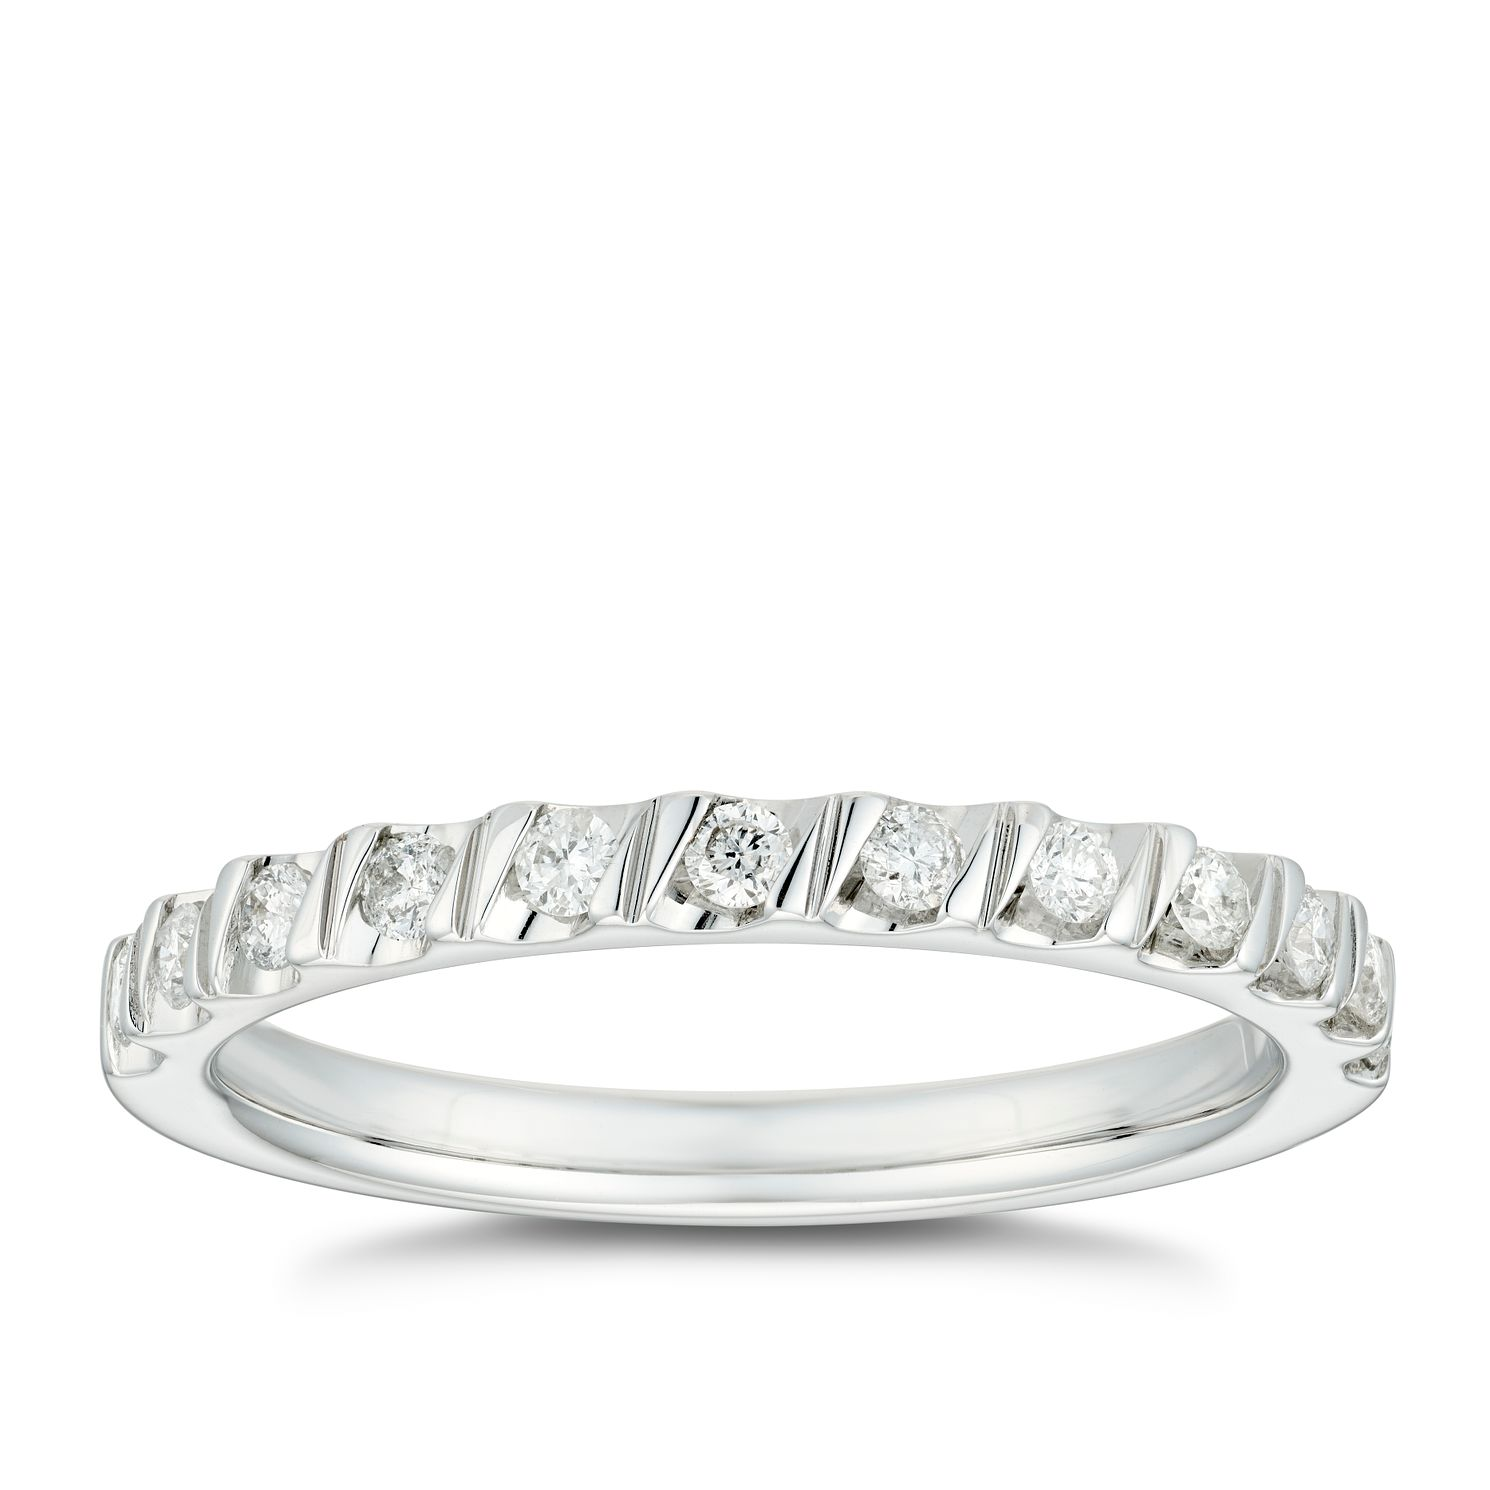 18ct White Gold 1/5ct Diamond Tension Set Wedding Ring - Product number 4635760